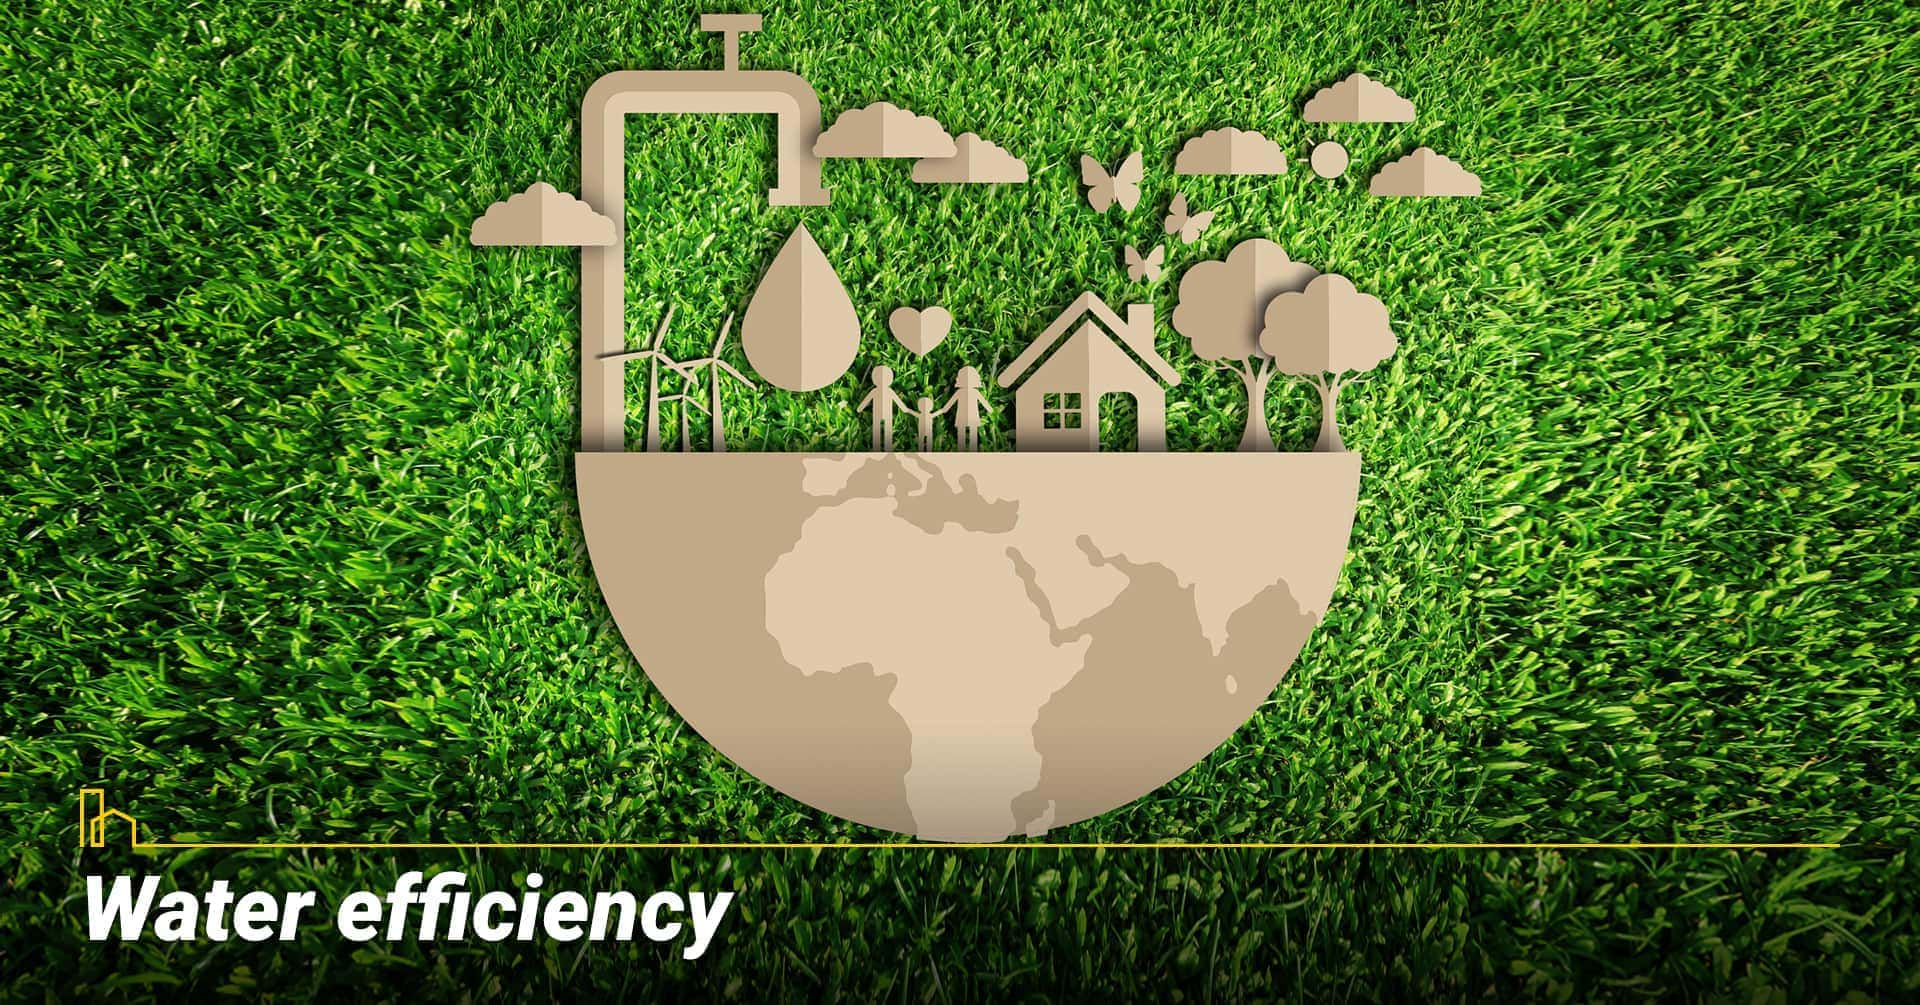 Water efficiency, water consumption of the property